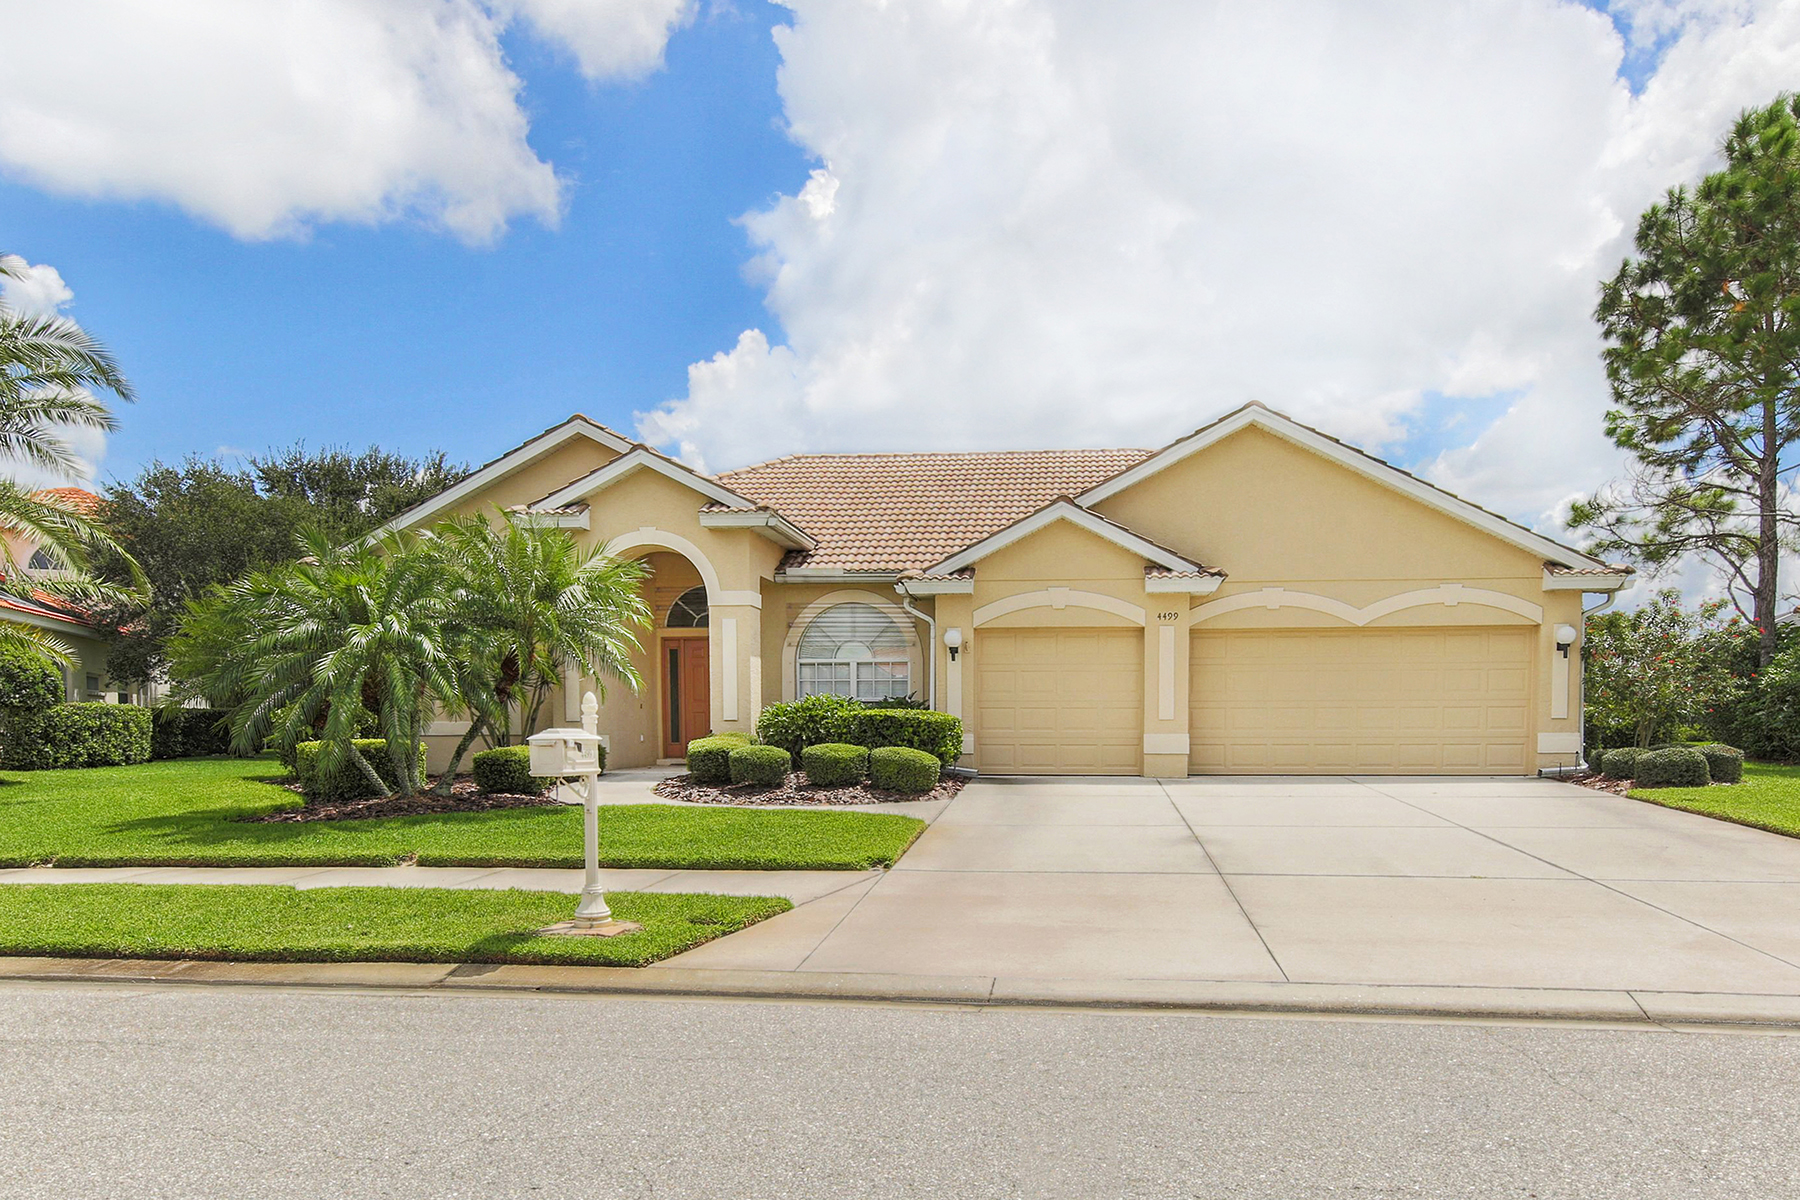 Single Family Home for Sale at HERITAGE OAKS GOLF AND COUNTRY CLUB 4499 Chase Oaks Dr Sarasota, Florida, 34241 United States